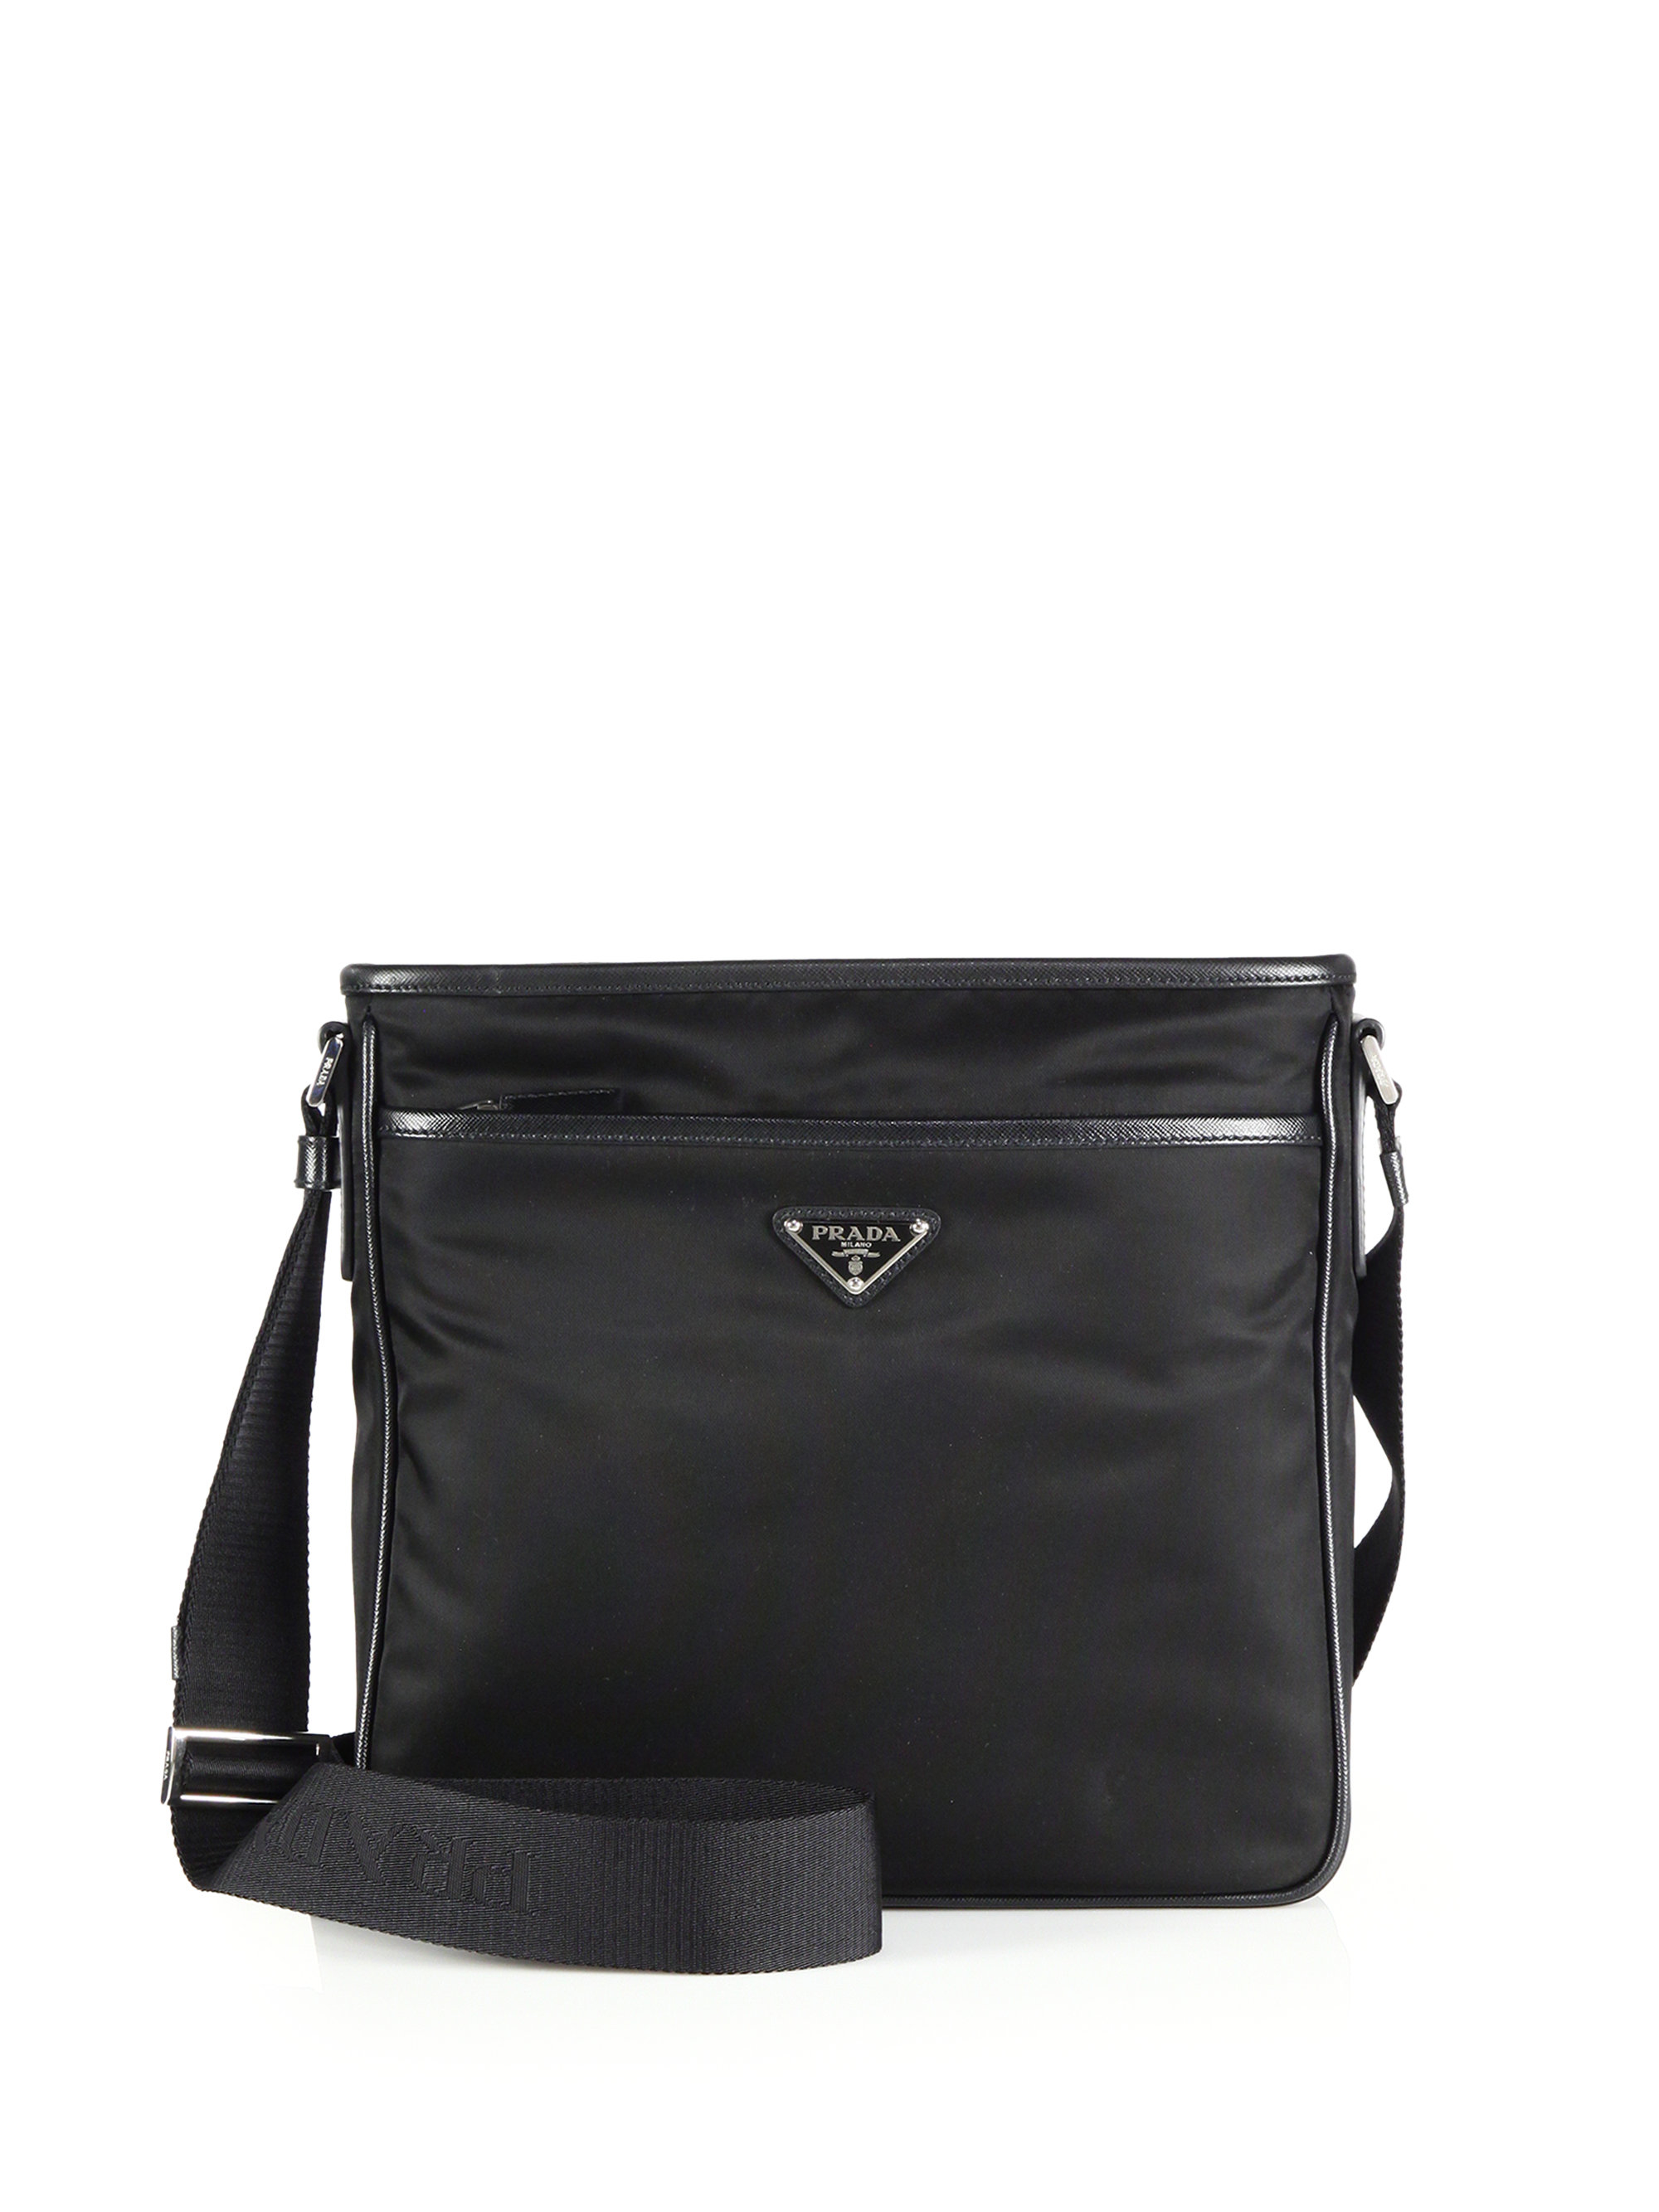 2b0e648ba2 ... cheap lyst prada nylon crossbody bag in black for men 3f52d 418b3